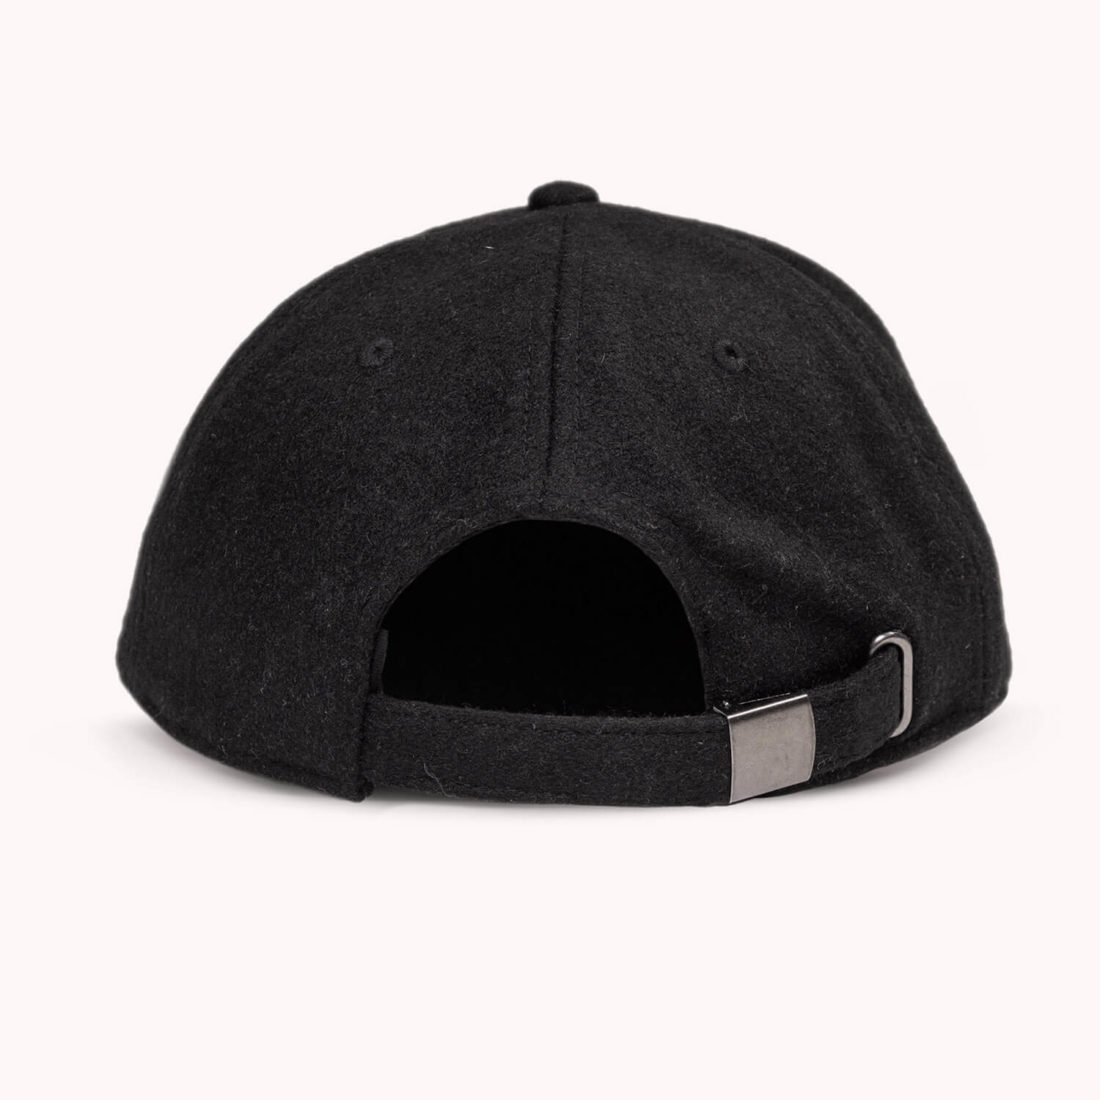 Team Hat - Black 3